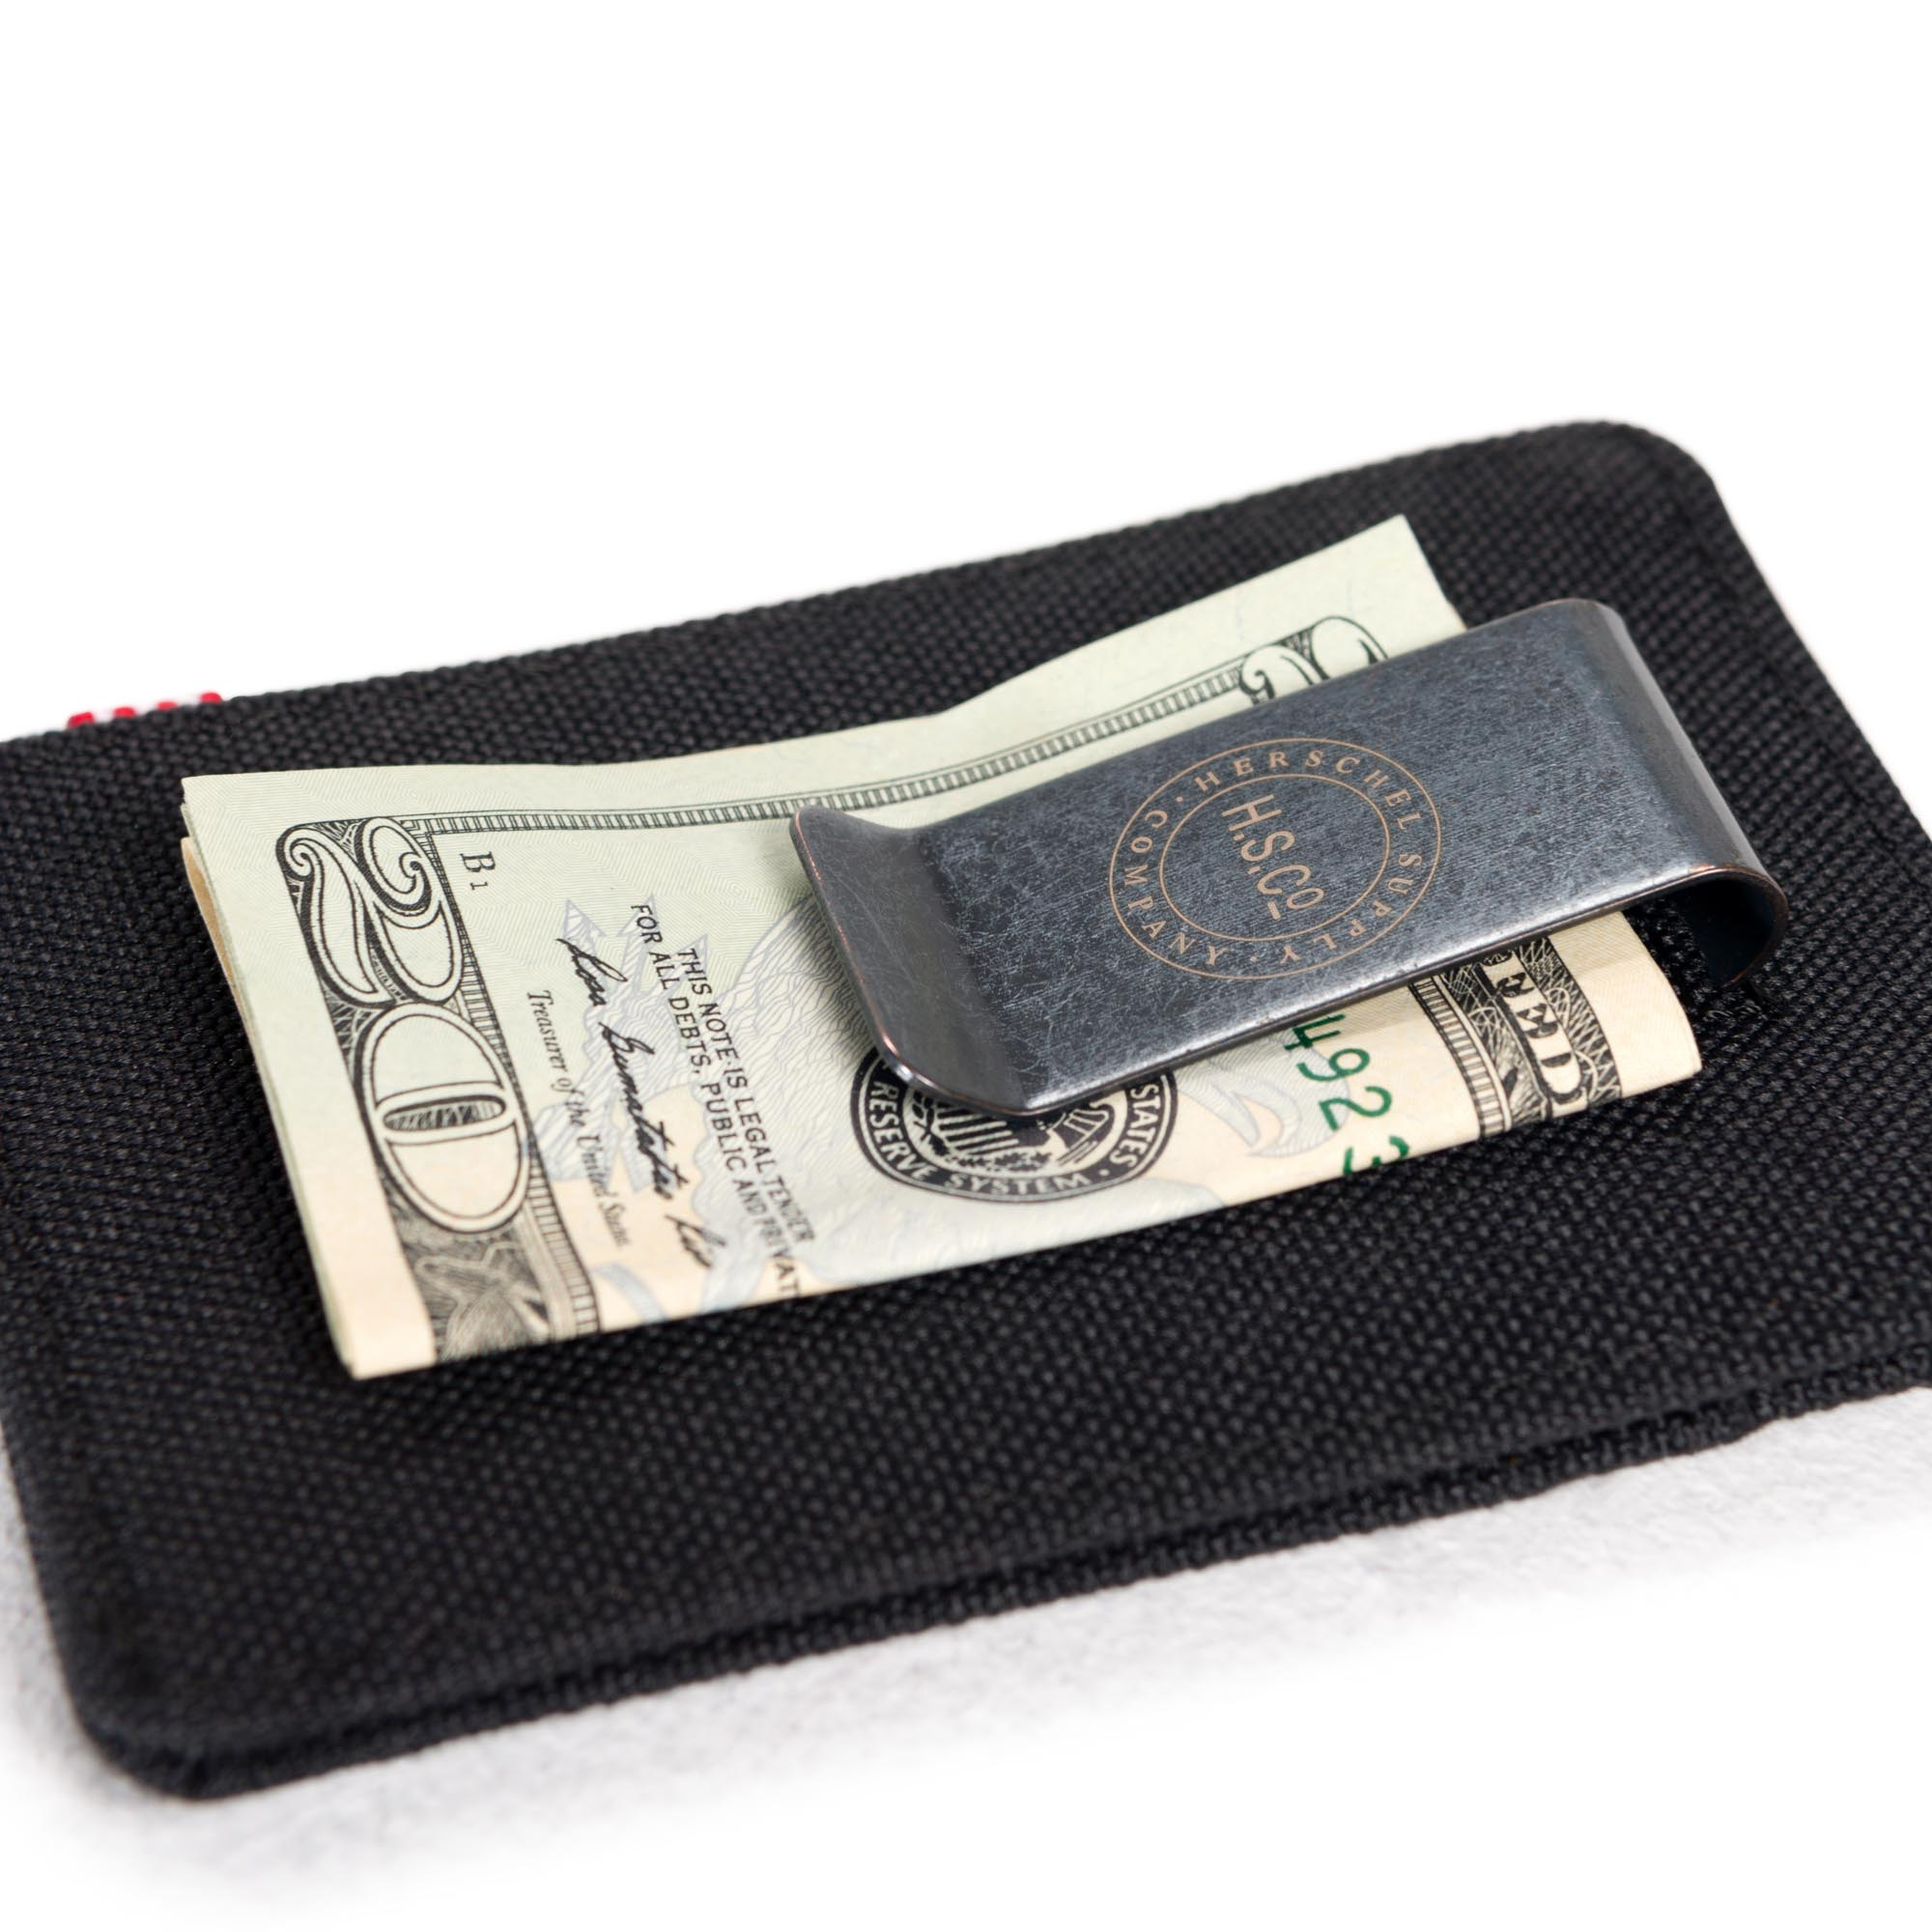 NEW Steel Slim Money Clip Double Sided Credit Card Holder Wallet HS